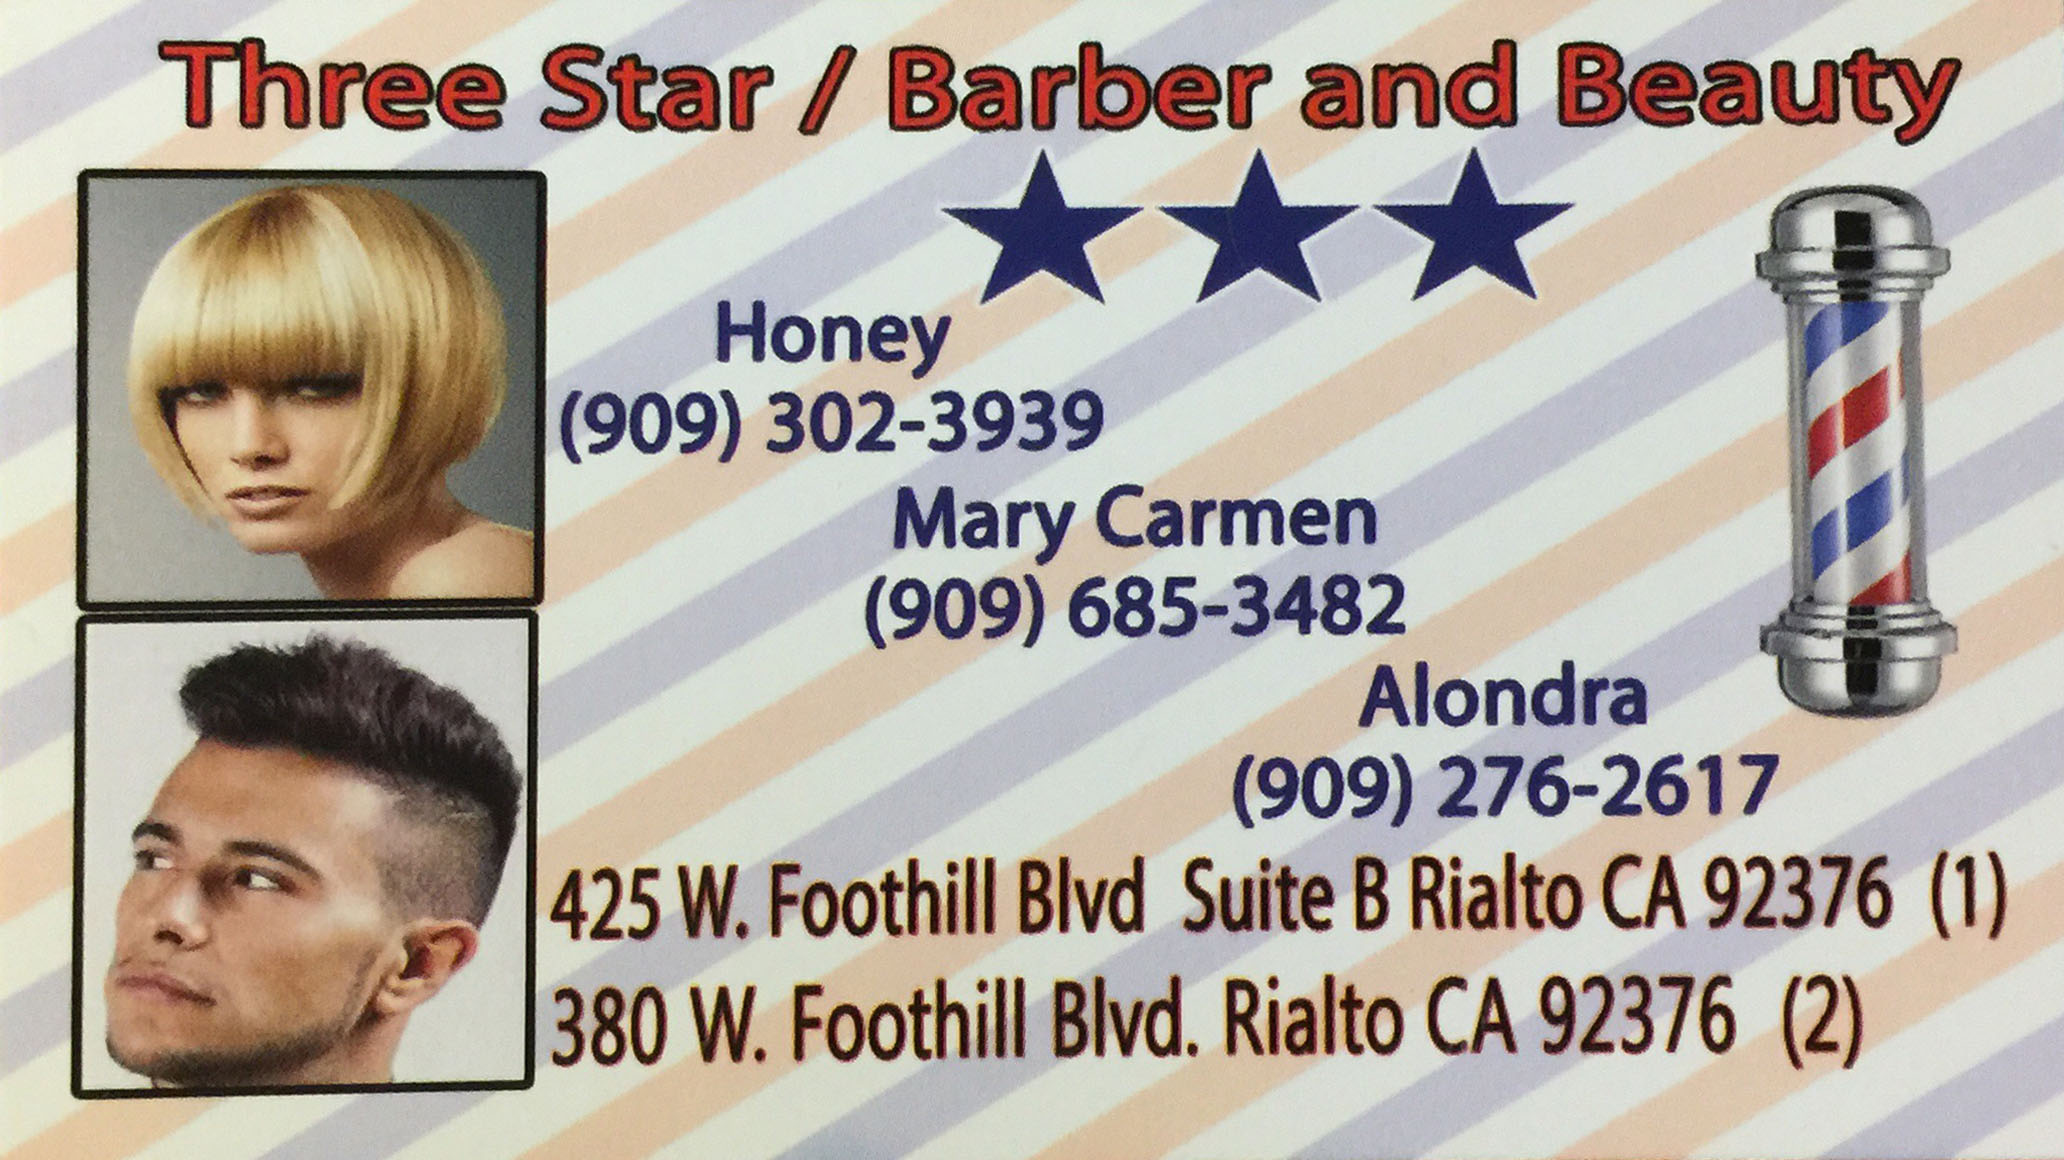 Three Star Barber and Beauty